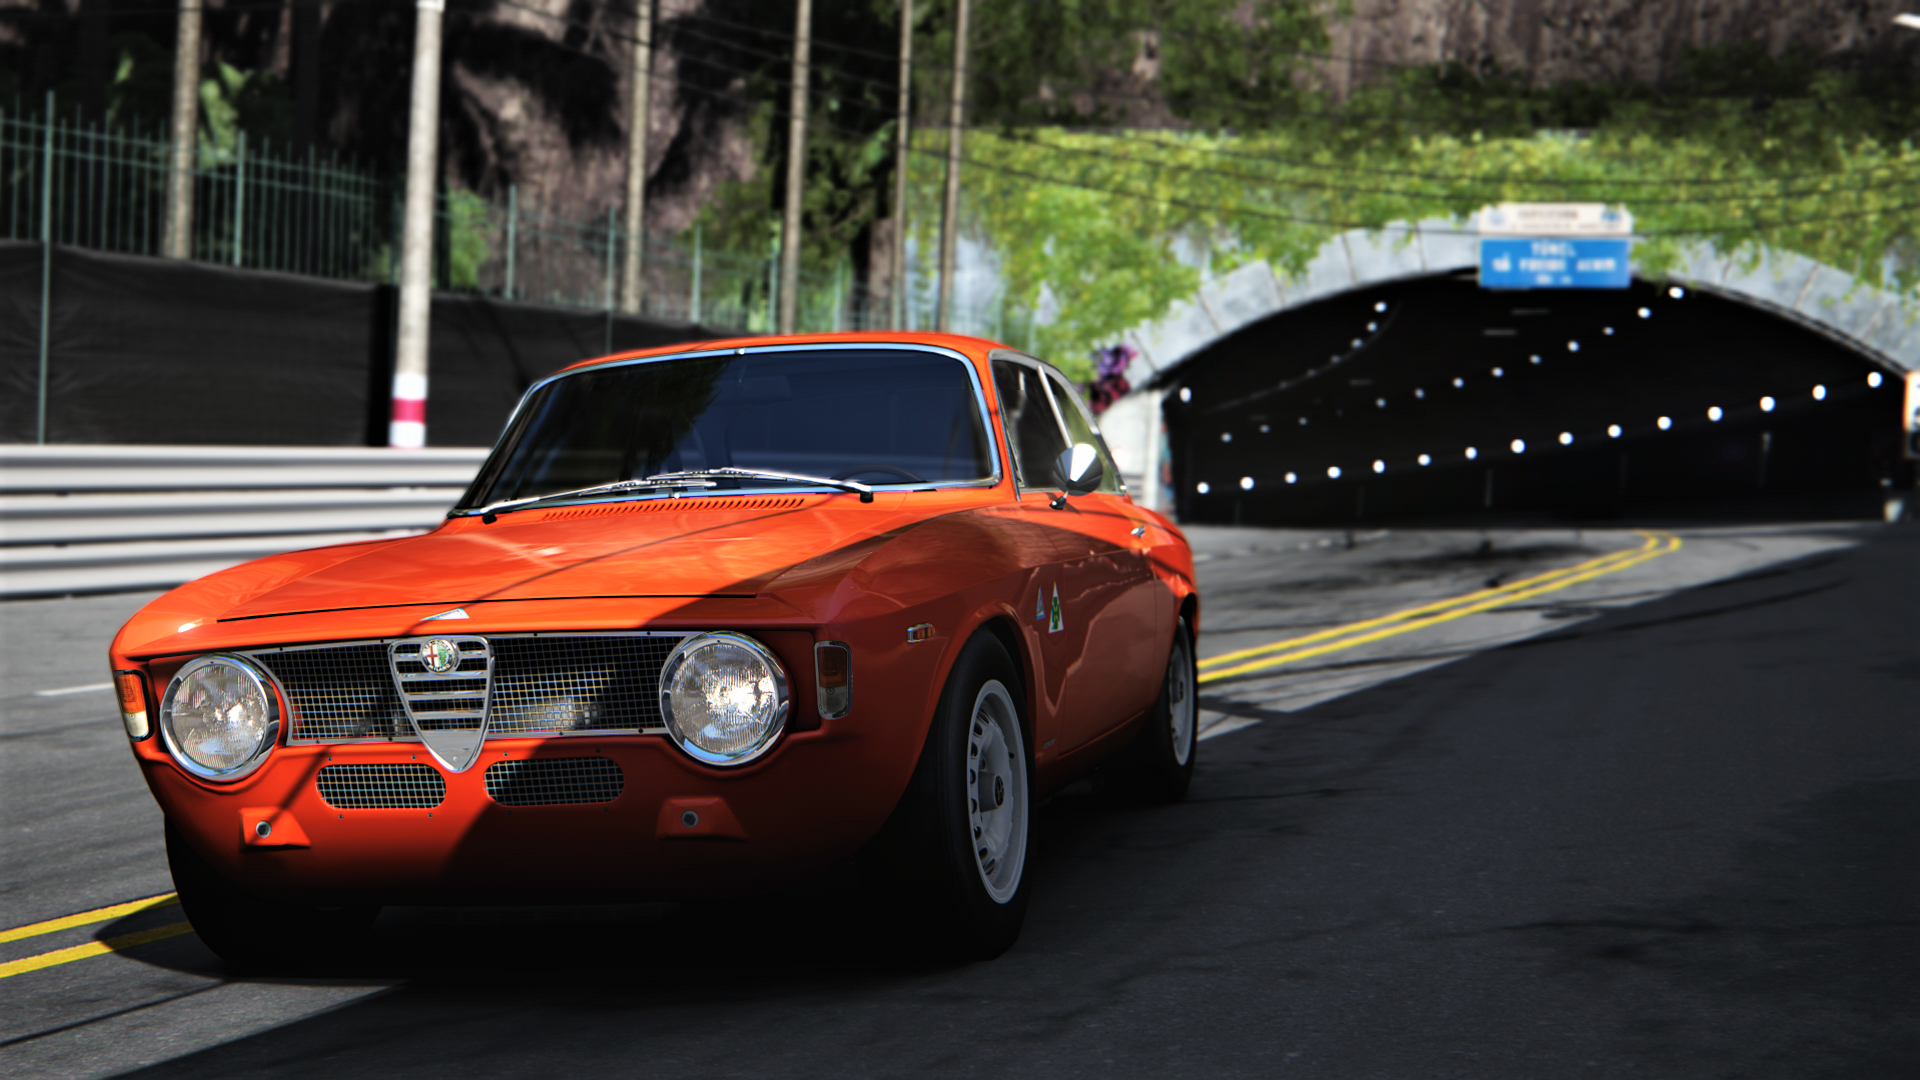 Screenshot_ks_alfa_romeo_gta_rio_29-11-120-19-31-28.png